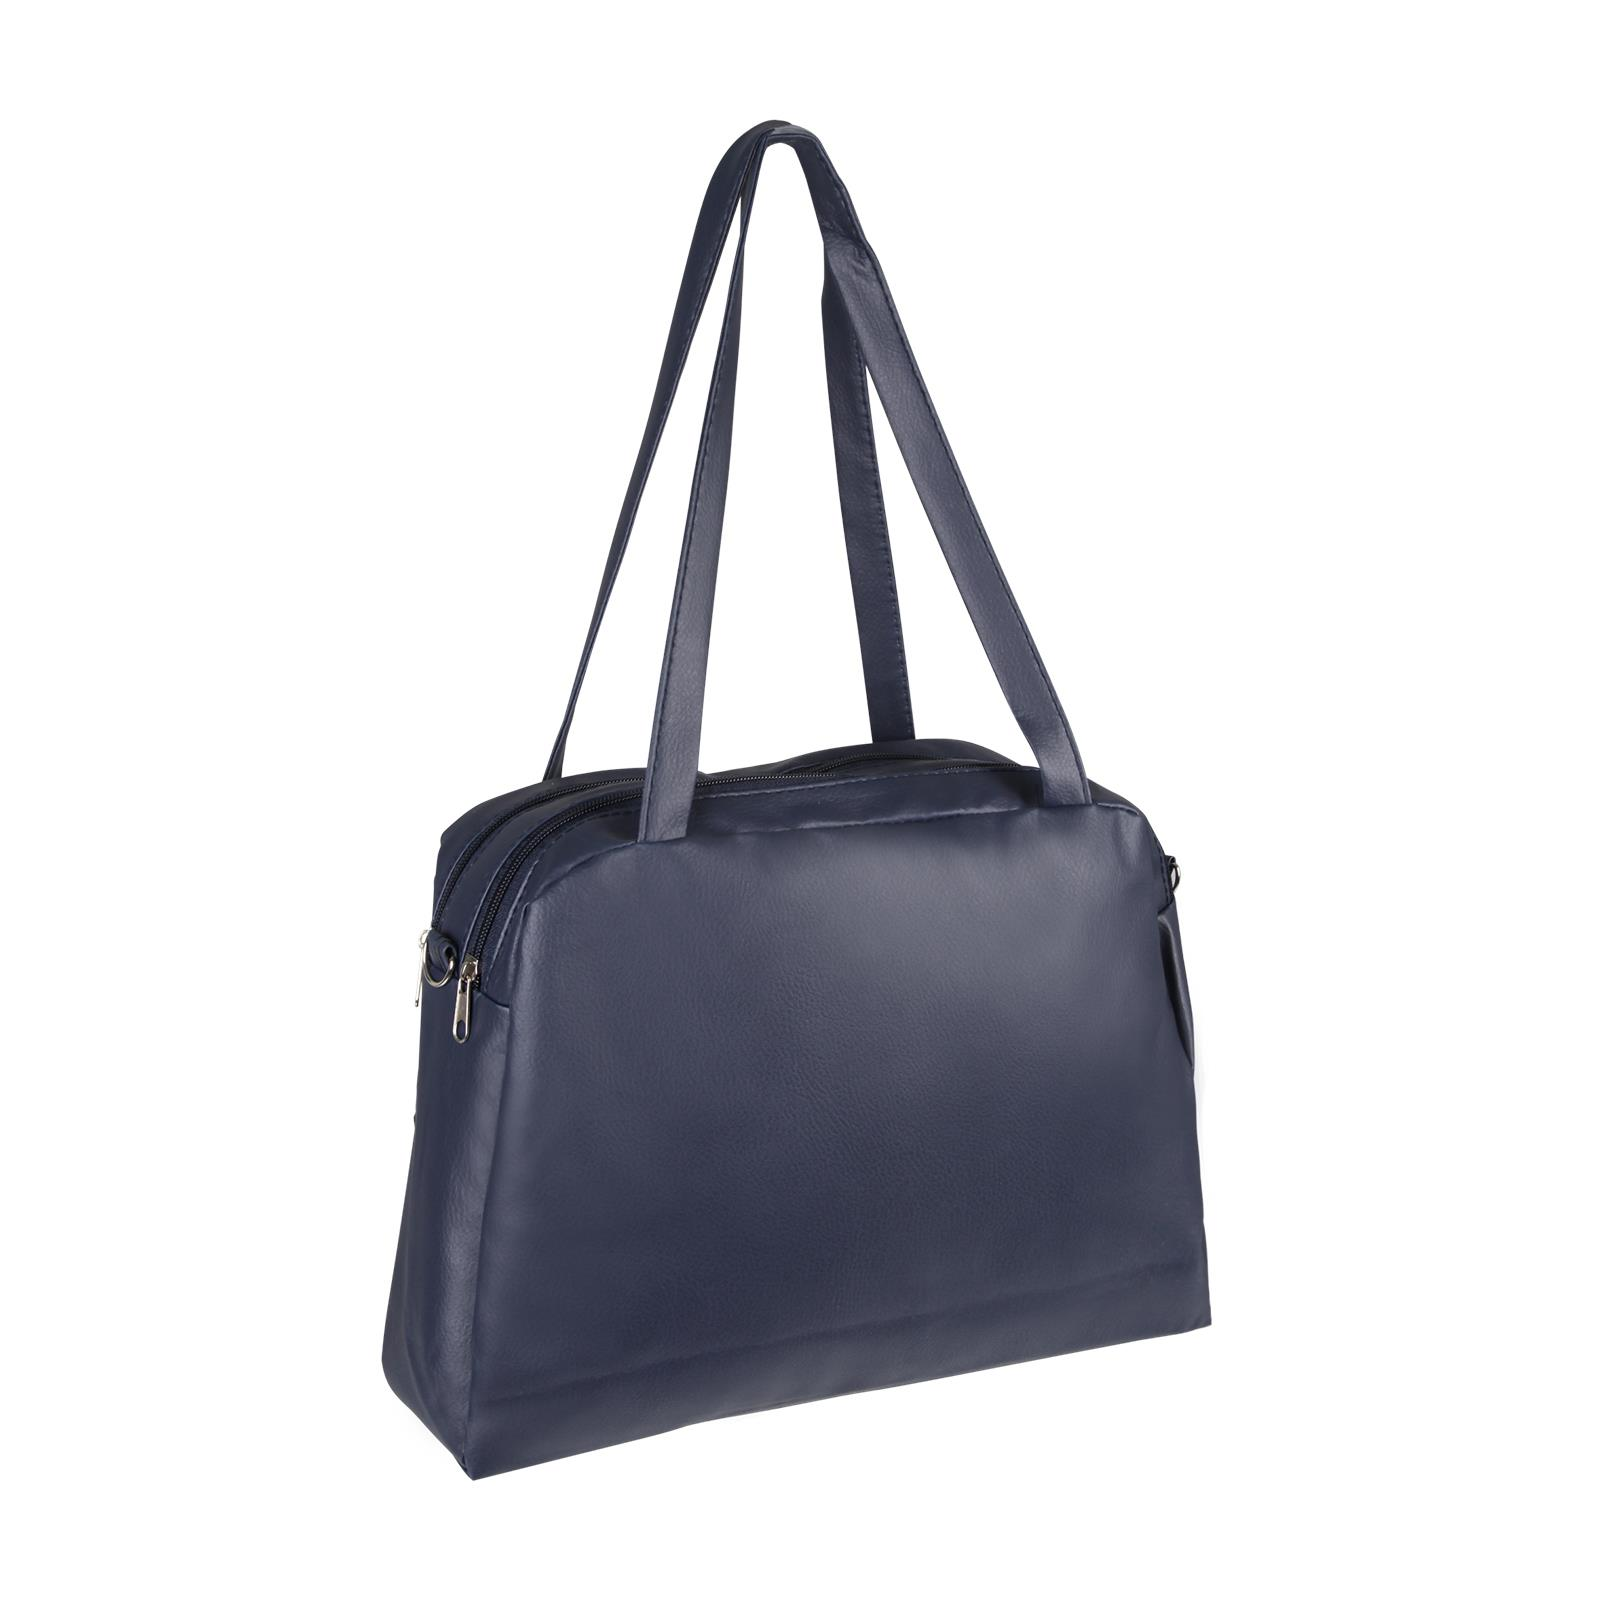 Medium-Handbag-Shoulder-Bowler-Bag-Vegan-Leather-Tote-Shop-Office-Work-Fashion thumbnail 7